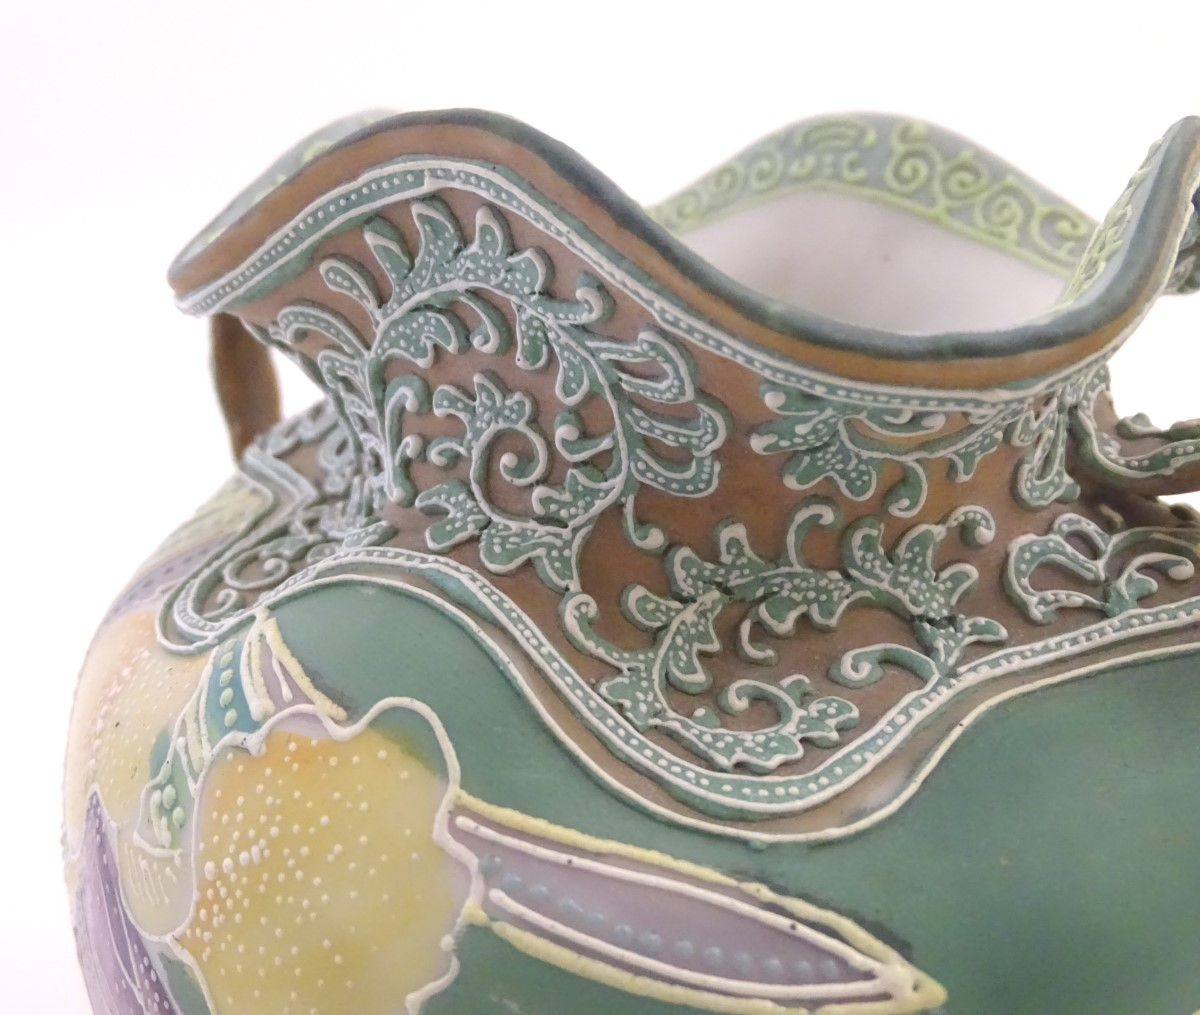 Lot 44 - A pair of Continental twin handled vases of squat form with lobed rims and hand painted floral and